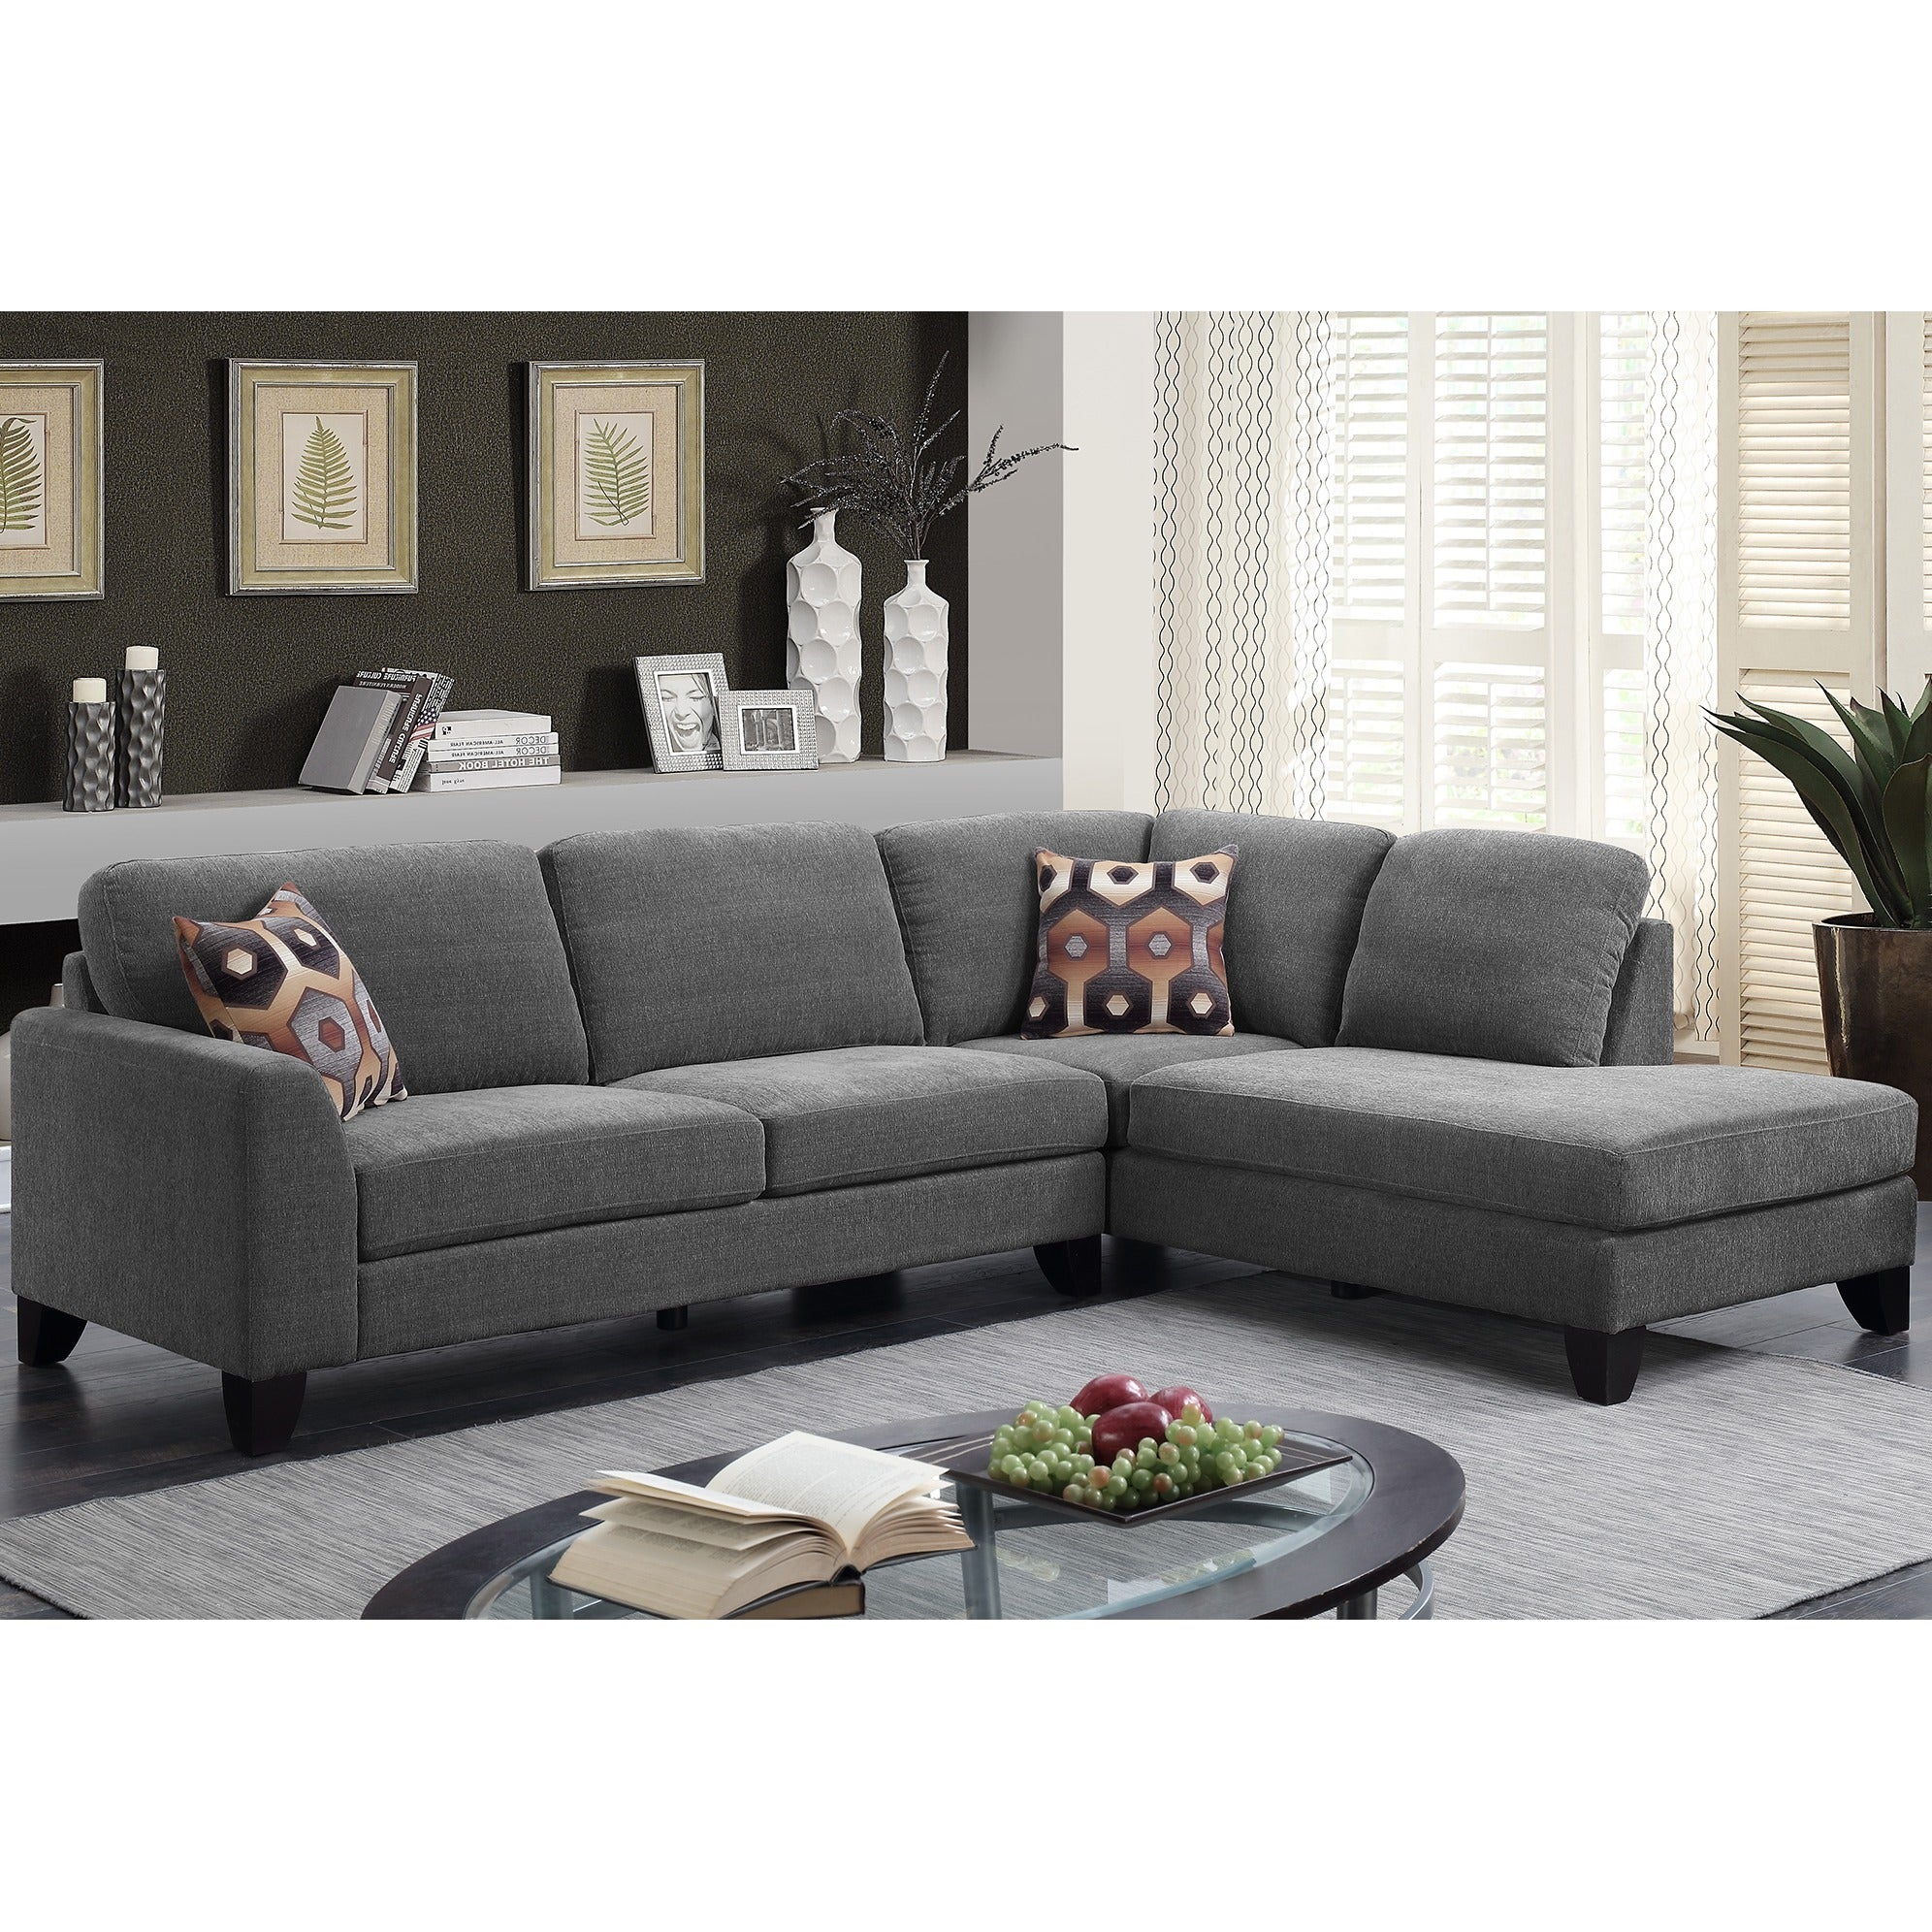 Ordinaire Shop Porter Monza Grey Chenille Sectional Sofa With Optional Geometric  Ottoman   Free Shipping Today   Overstock.com   14037014